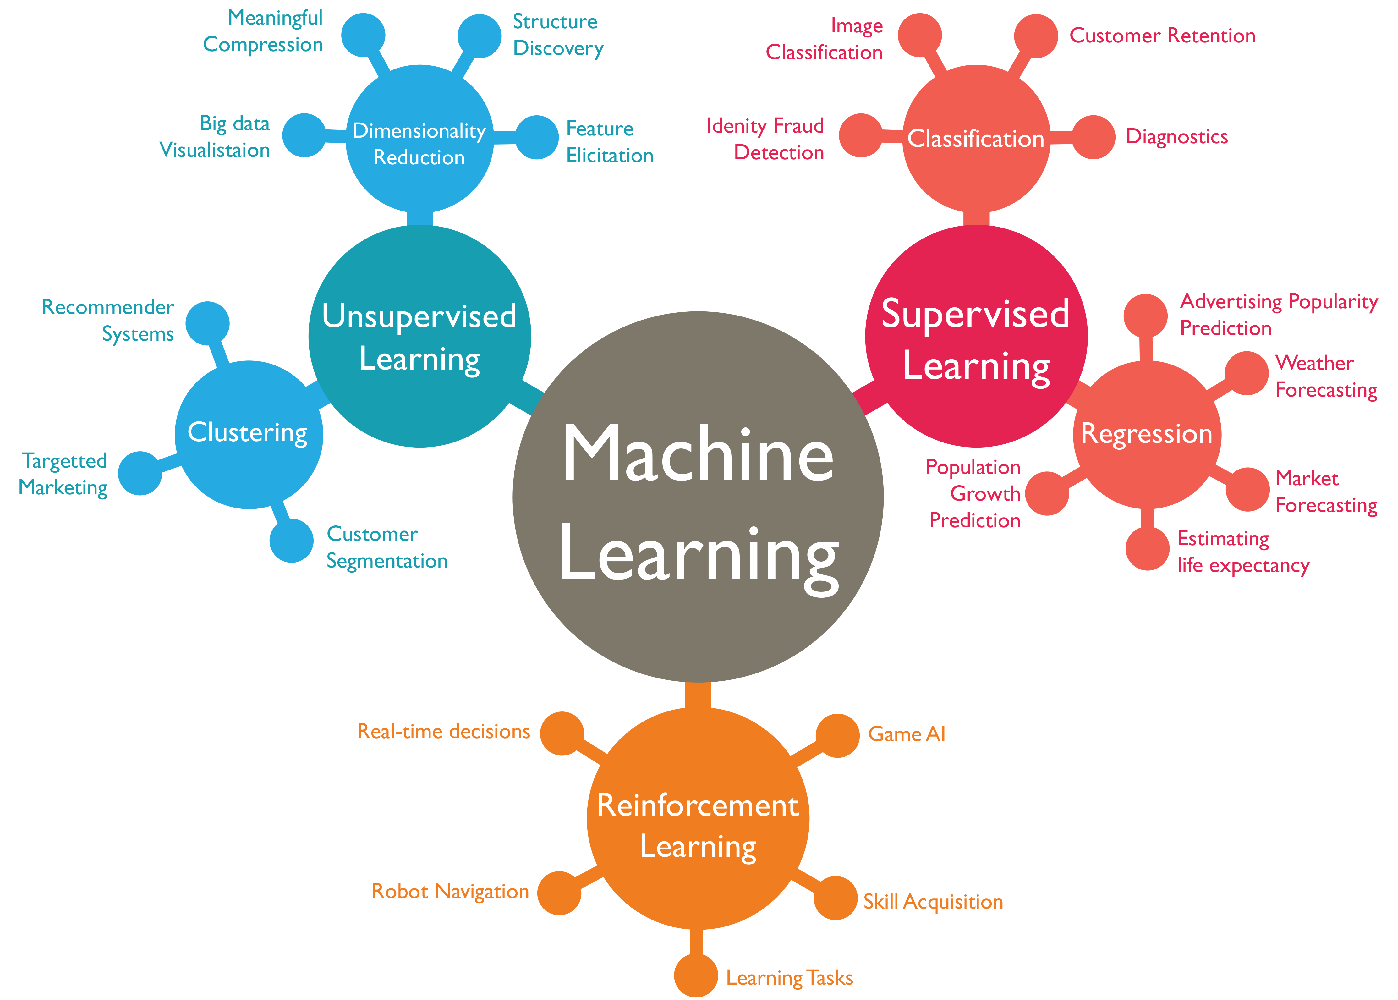 *Image via [Abdul Wahid](https://www.slideshare.net/awahid/big-data-and-machine-learning-for-businesses)*